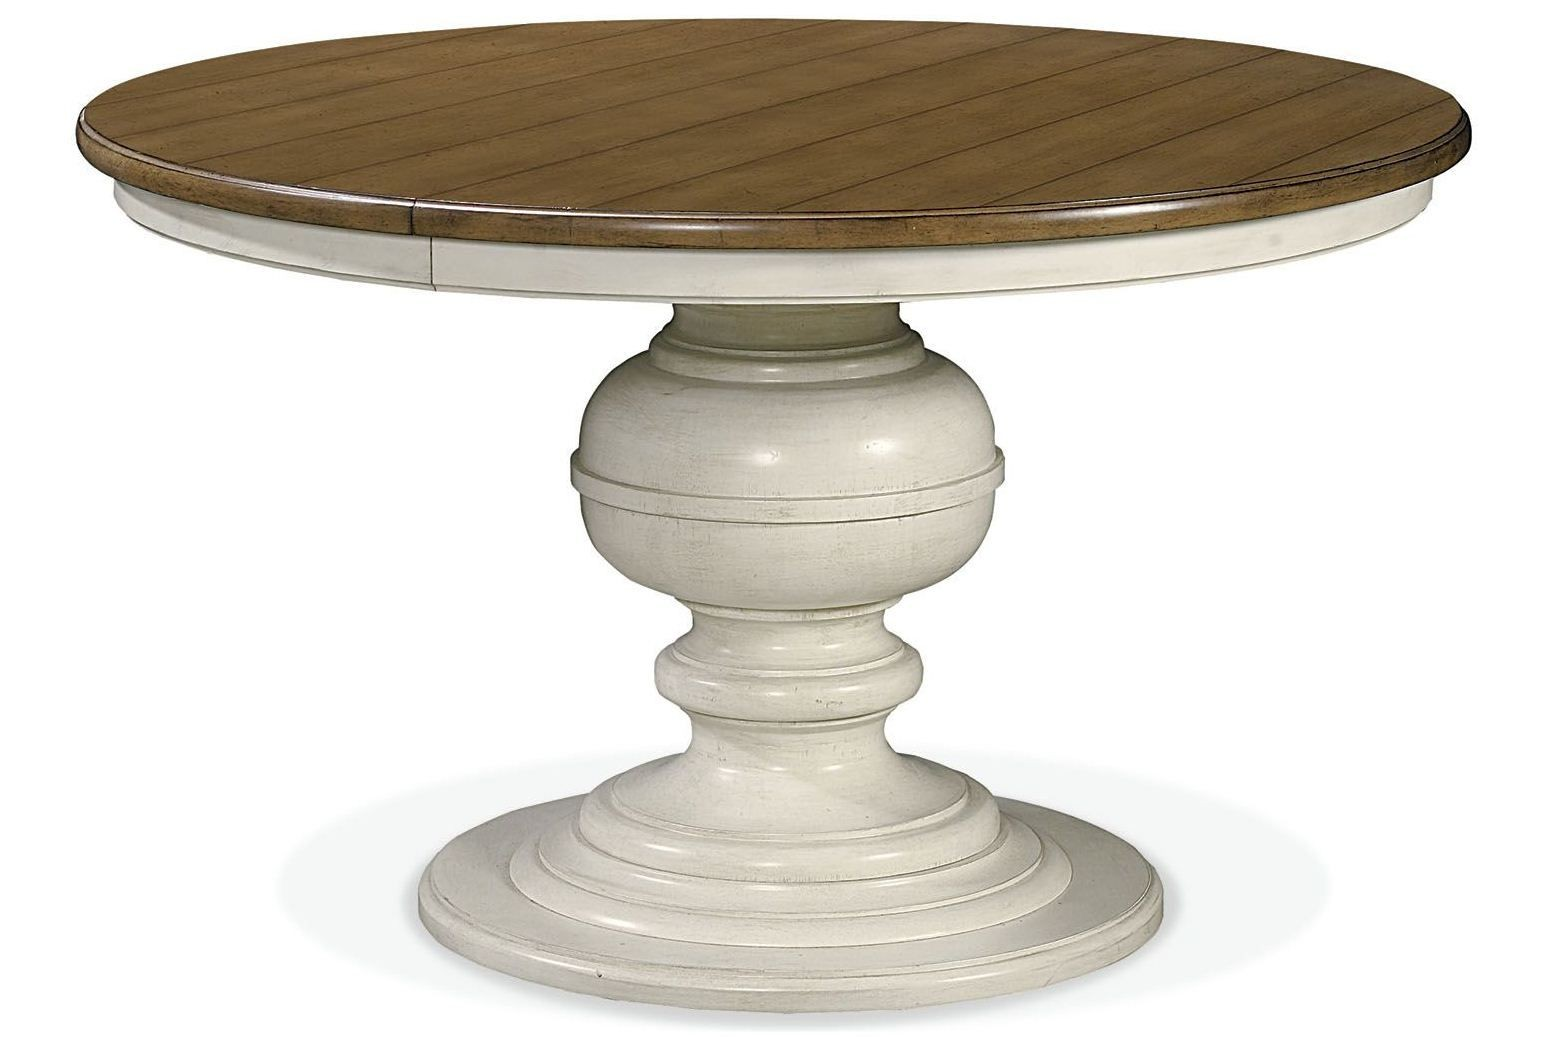 Summer Hill White Single Round Pedestal Extendable Dining  : 987656silo from colemanfurniture.com size 1558 x 1037 jpeg 151kB